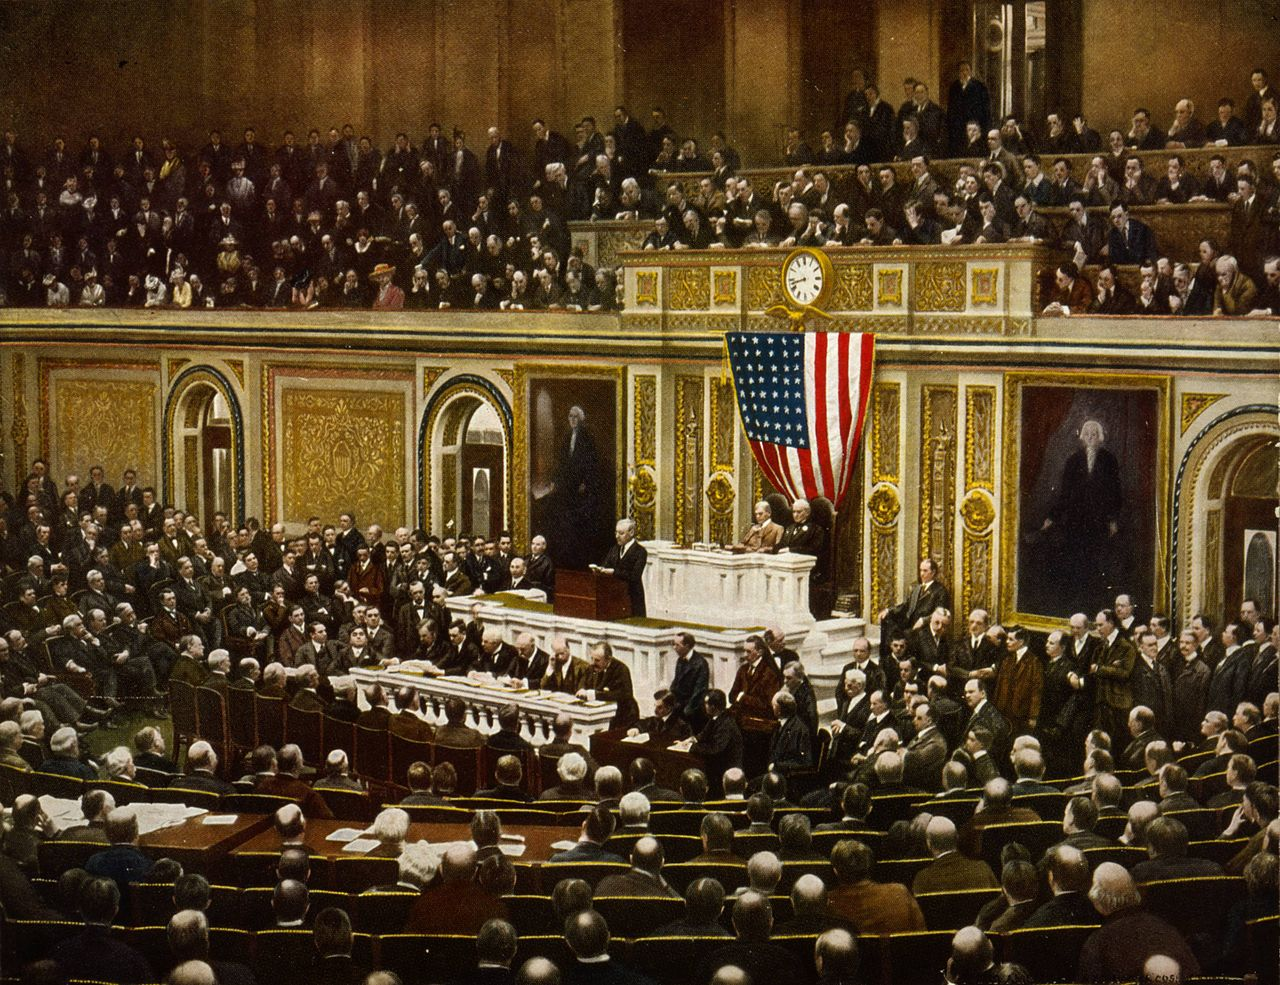 President Woodrow Wilson asking Congress to declare war on Germany on 2 April 1917